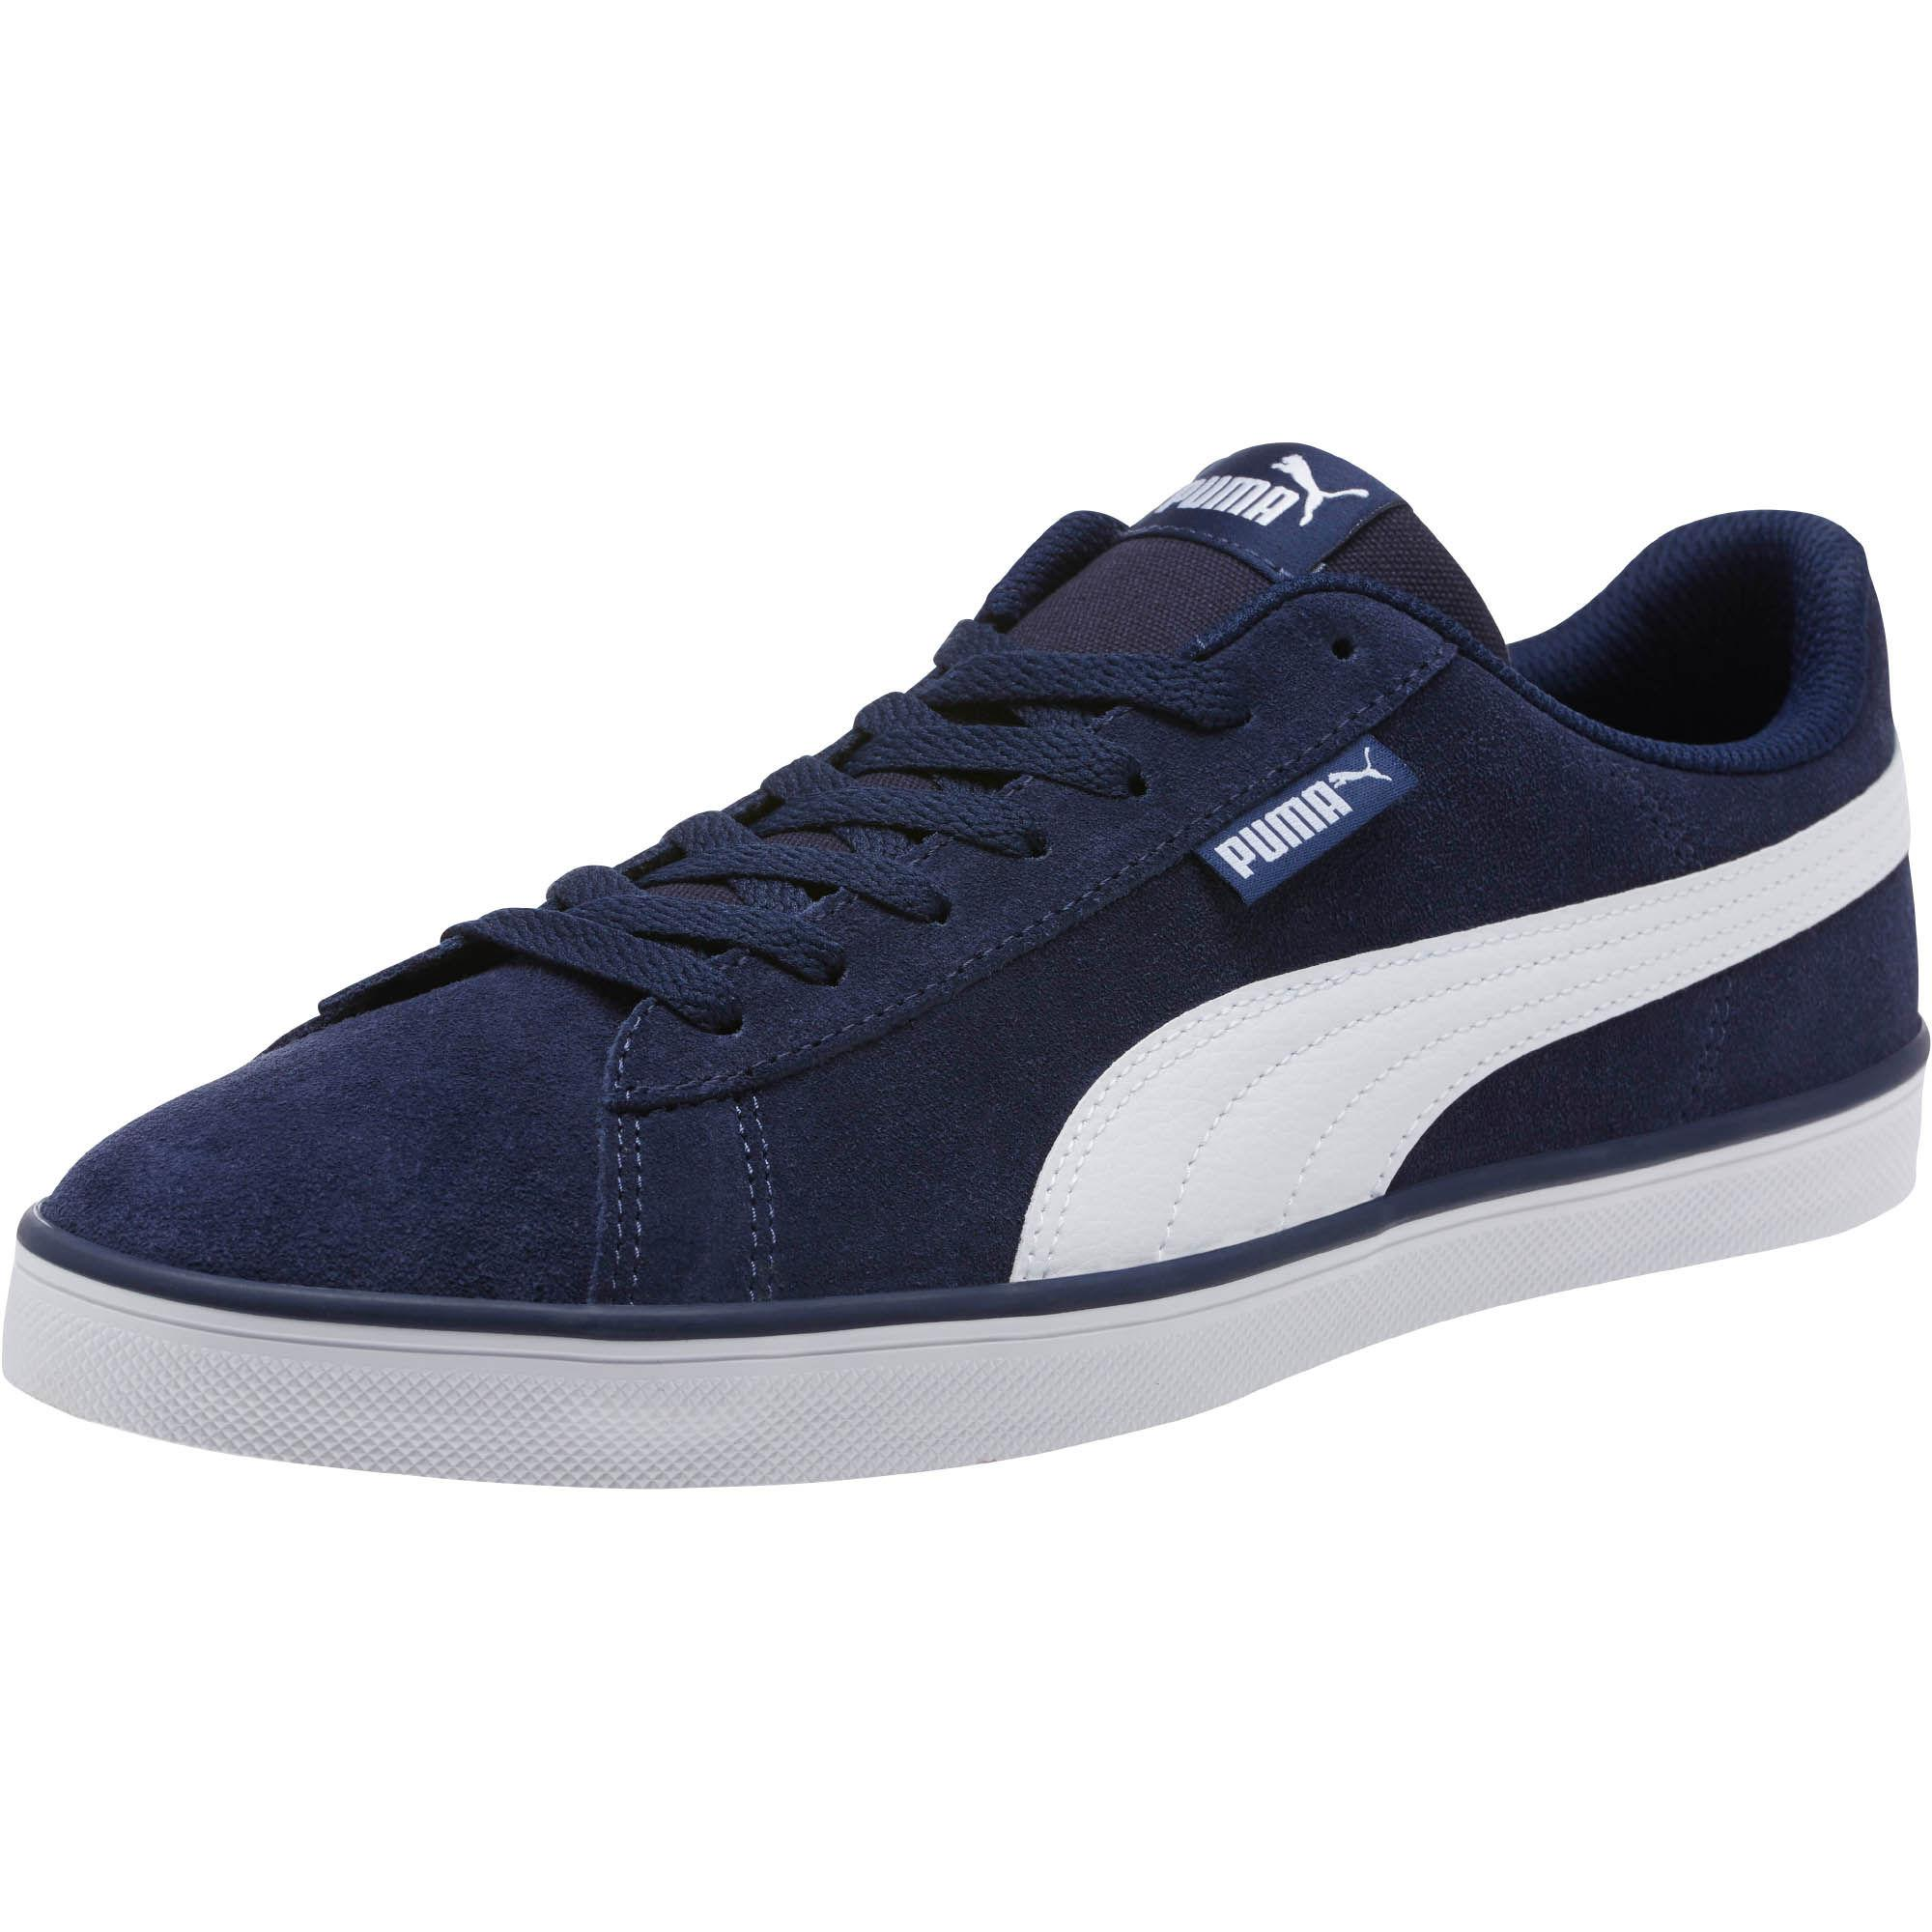 925b47aab7a1 Lyst - PUMA Urban Plus Suede Sneakers in Blue for Men - Save 36%